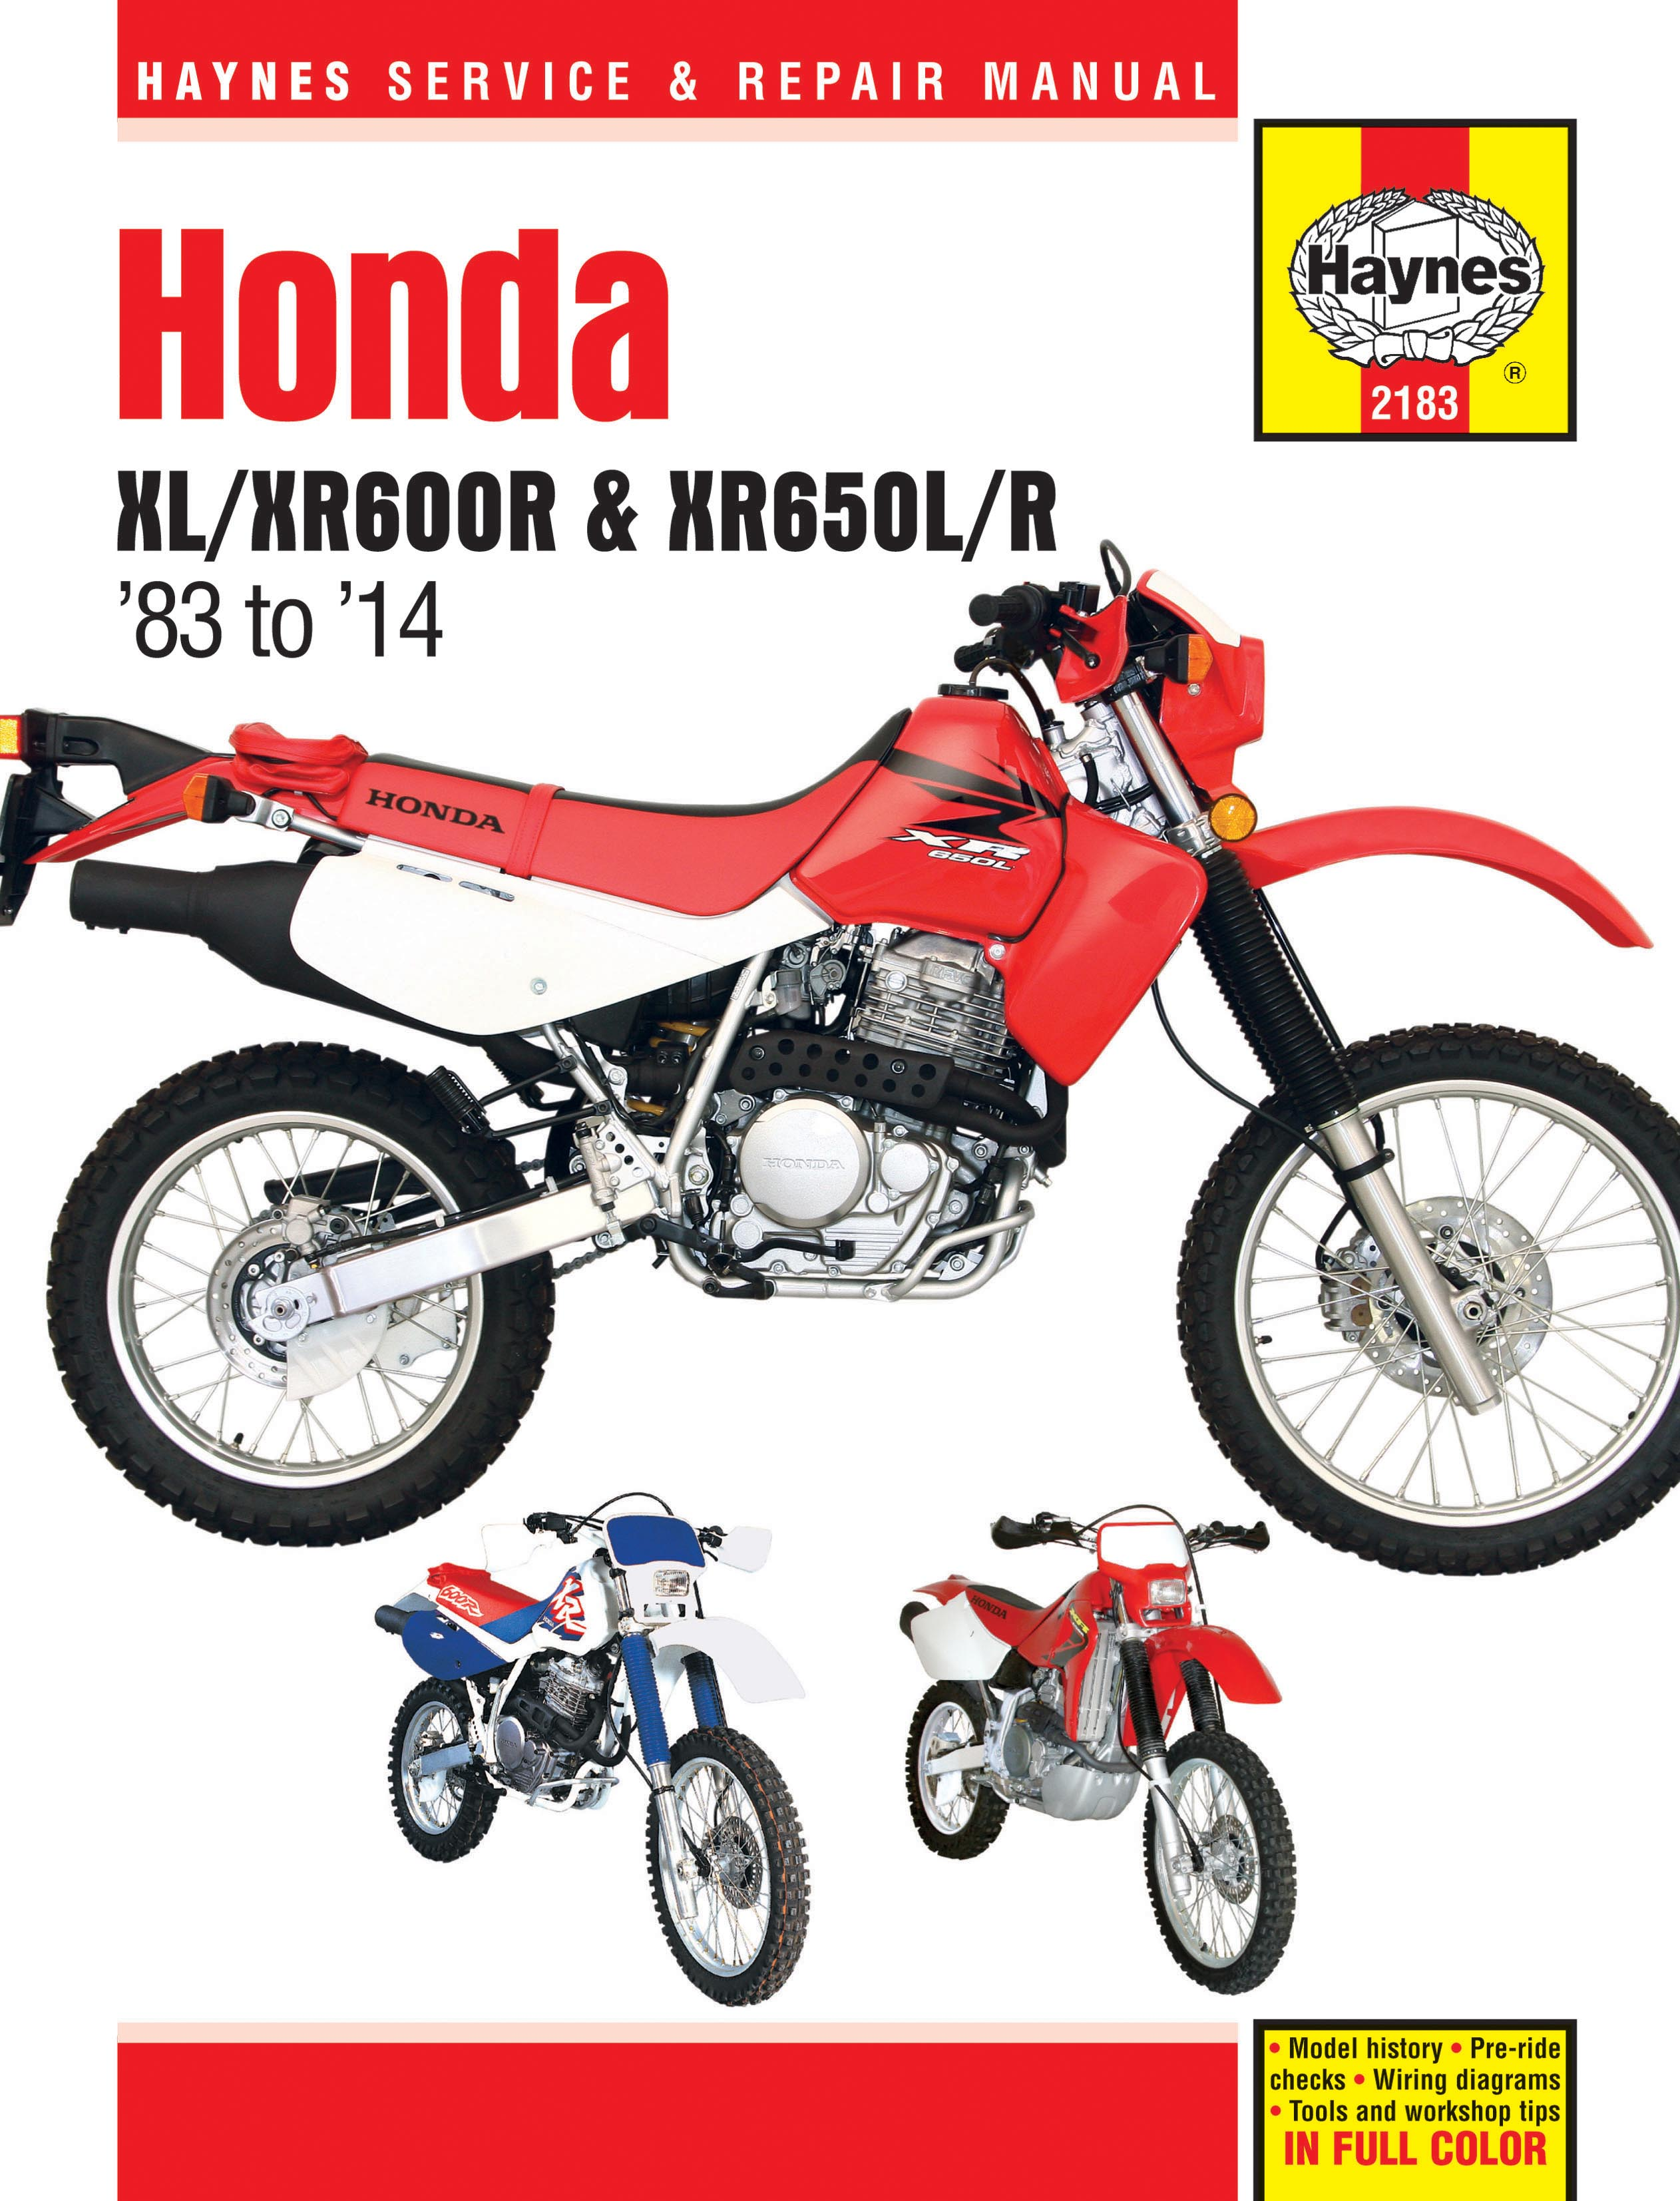 Honda Motorcycle XR650R (2000 - 2007) Repair Manuals on